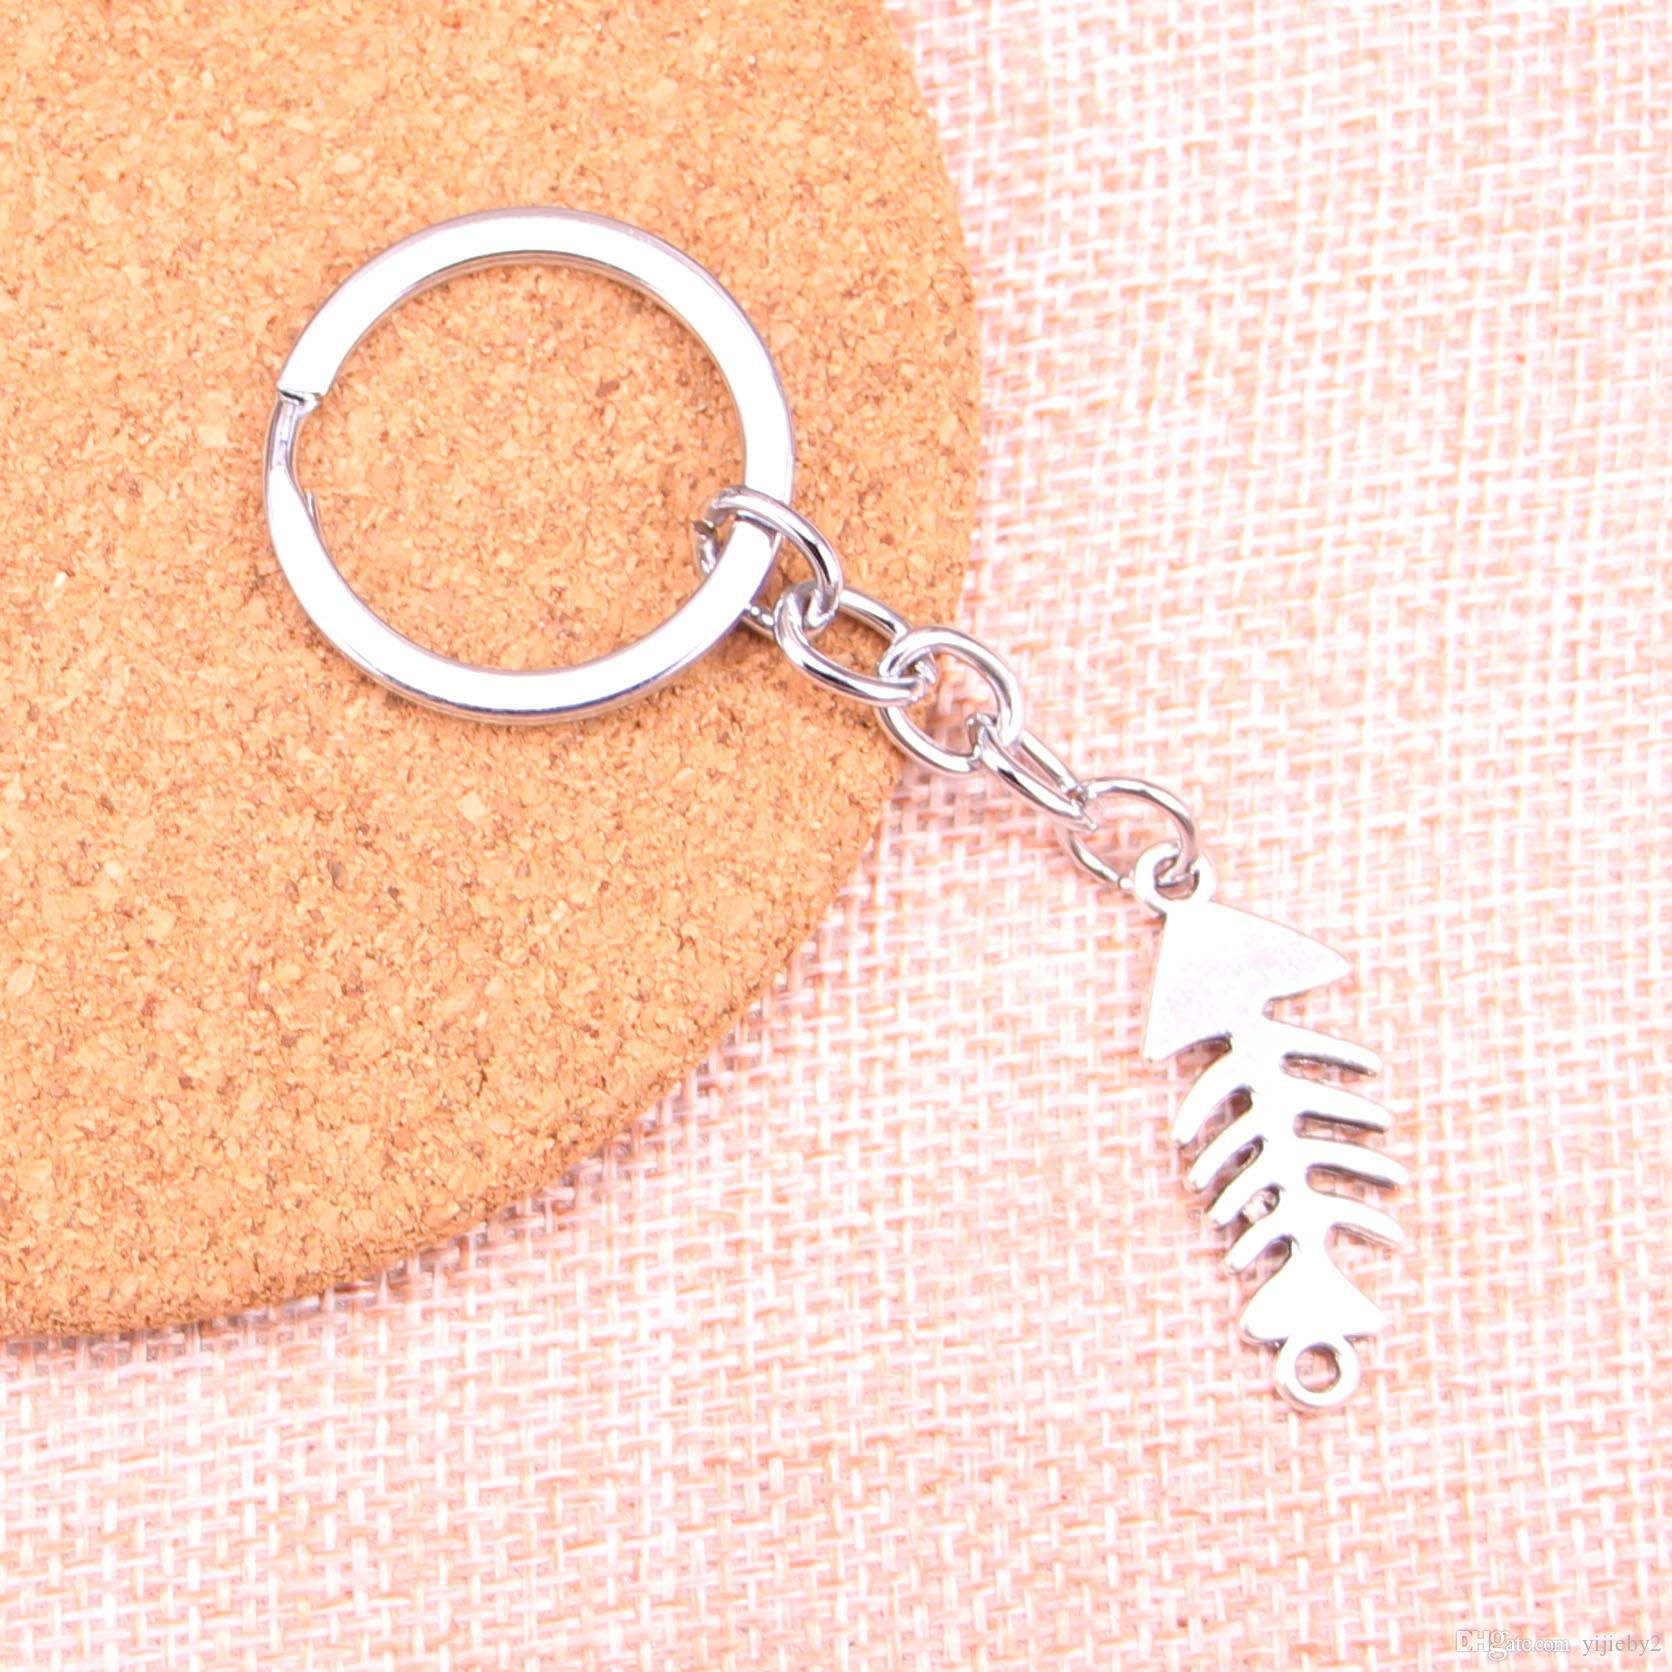 Fashion 28mm Key Ring Metal Key Chain Keychain Jewelry Antique Silver Plated fish bone connector 31*12mm Pendant